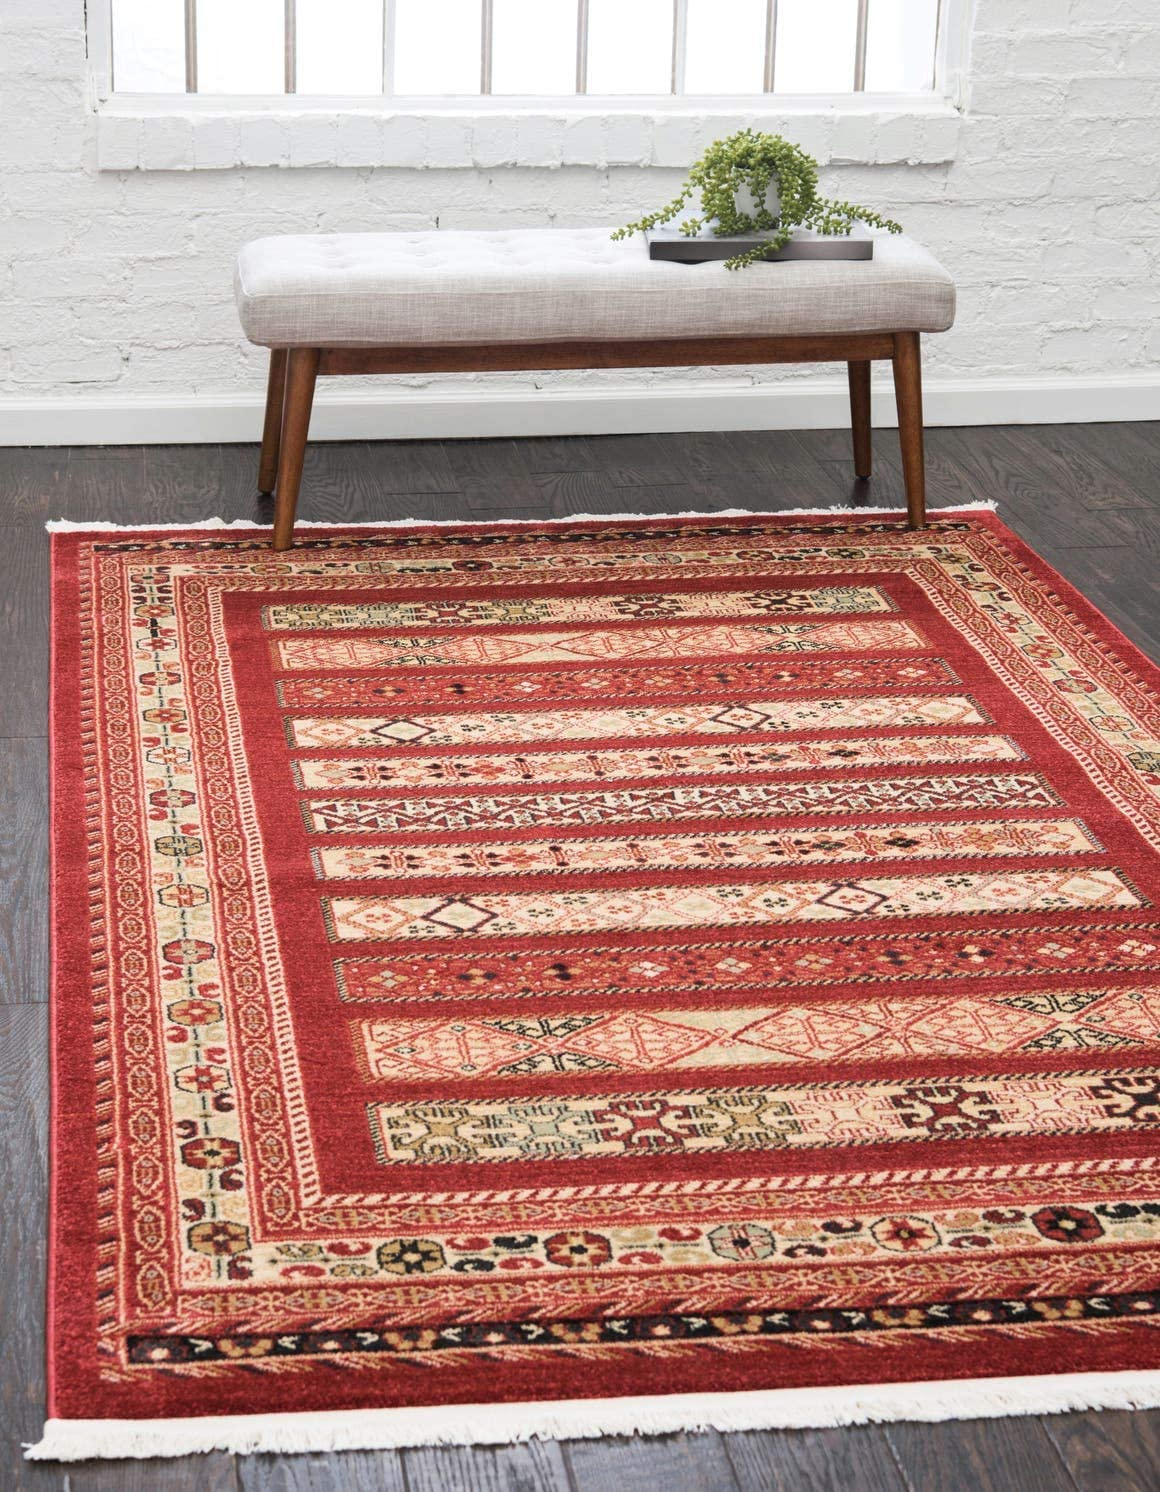 Unique Loom Fars Collection Tribal Modern Casual Rust Red Area Rug 8 0 x 10 0